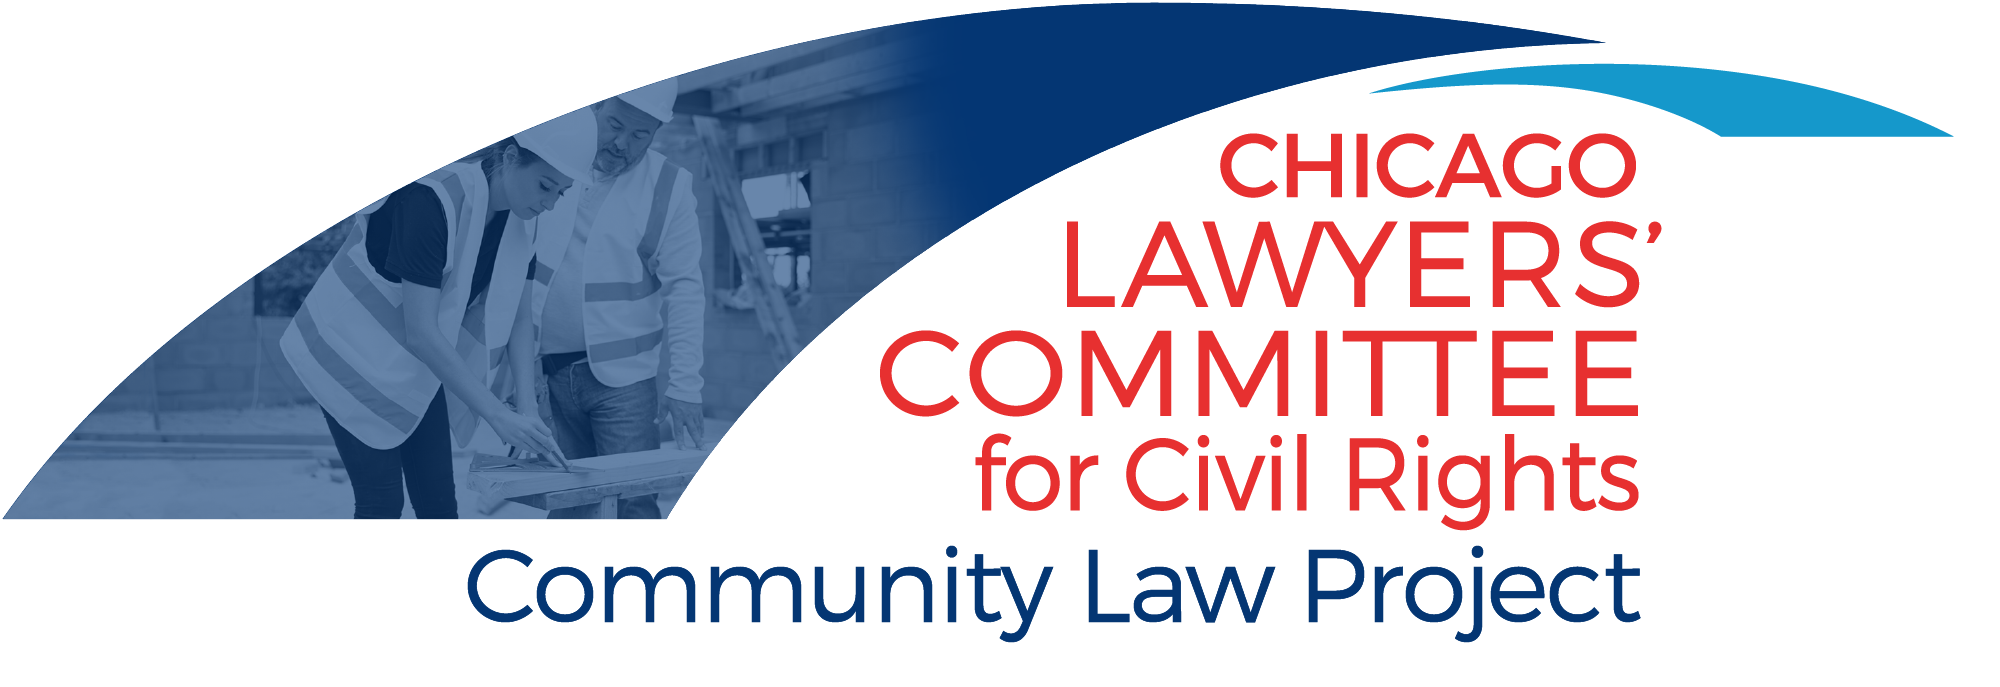 Community_Law_Project_2000px_687px.png